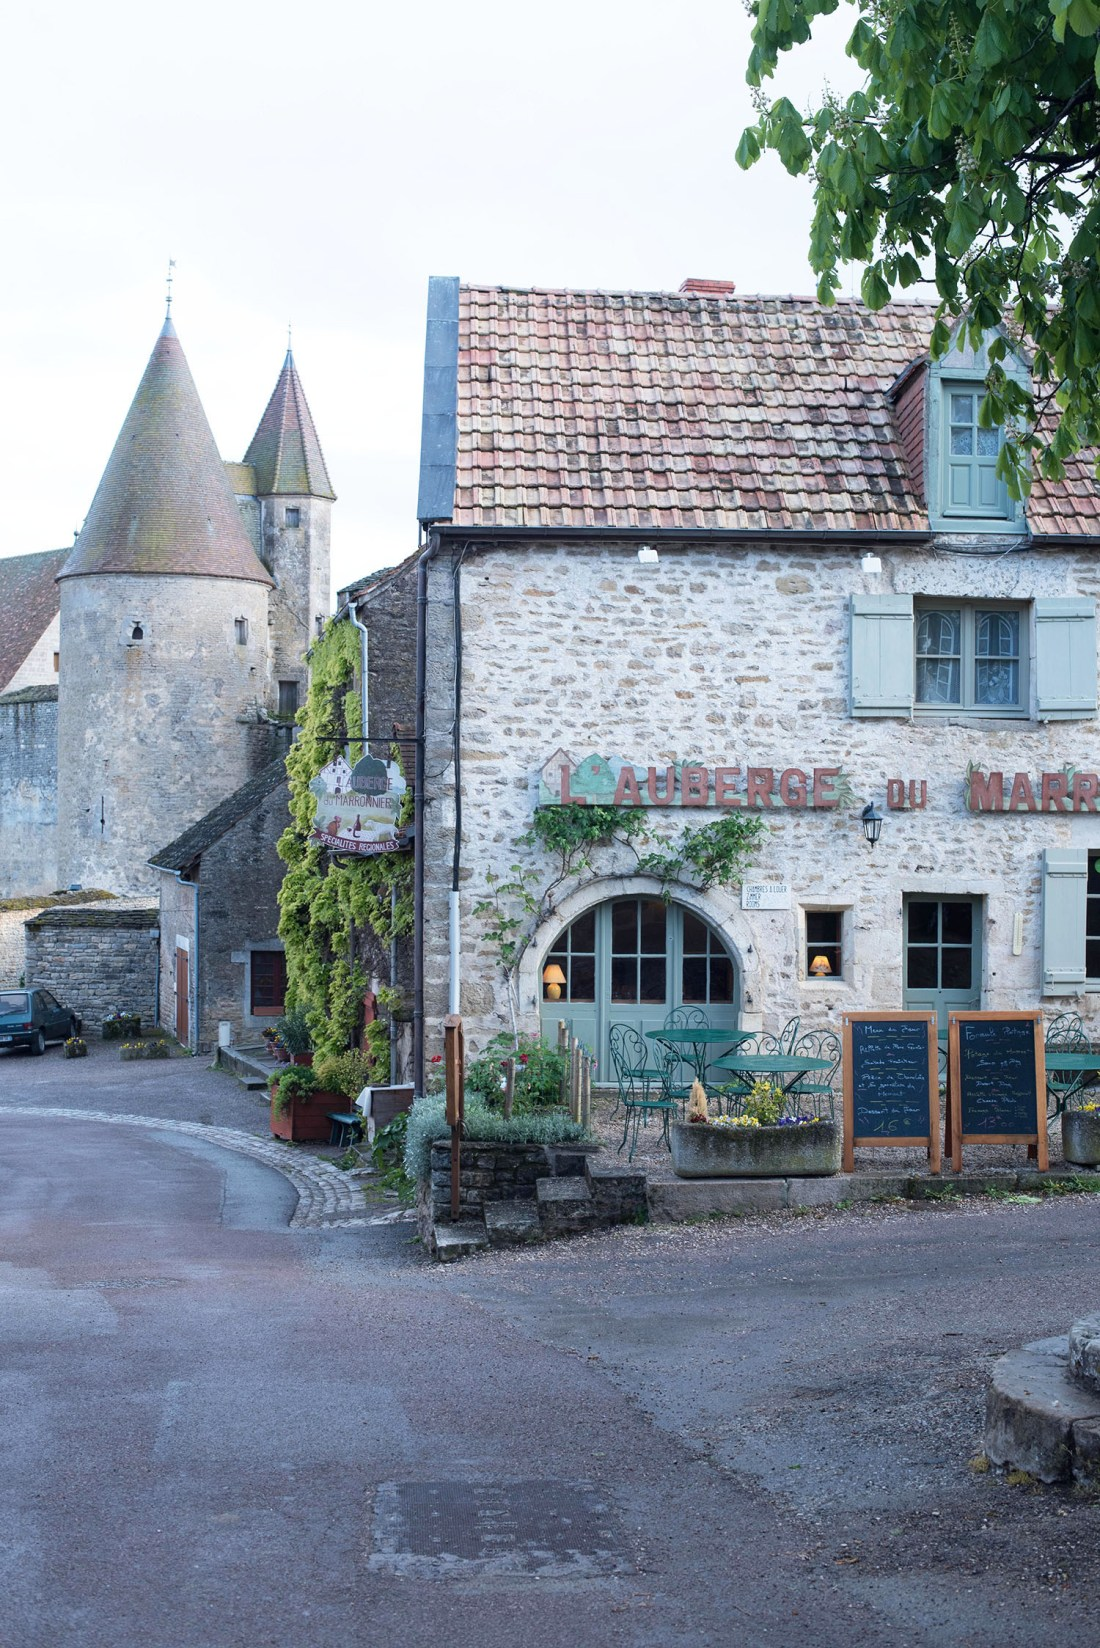 L'Auberge du Moissonier, a restaurant in Chateauneuf-en-Auxois in Burgundy, as captured by Winnipeg travel blogger Cee Fardoe of Coco & Vera